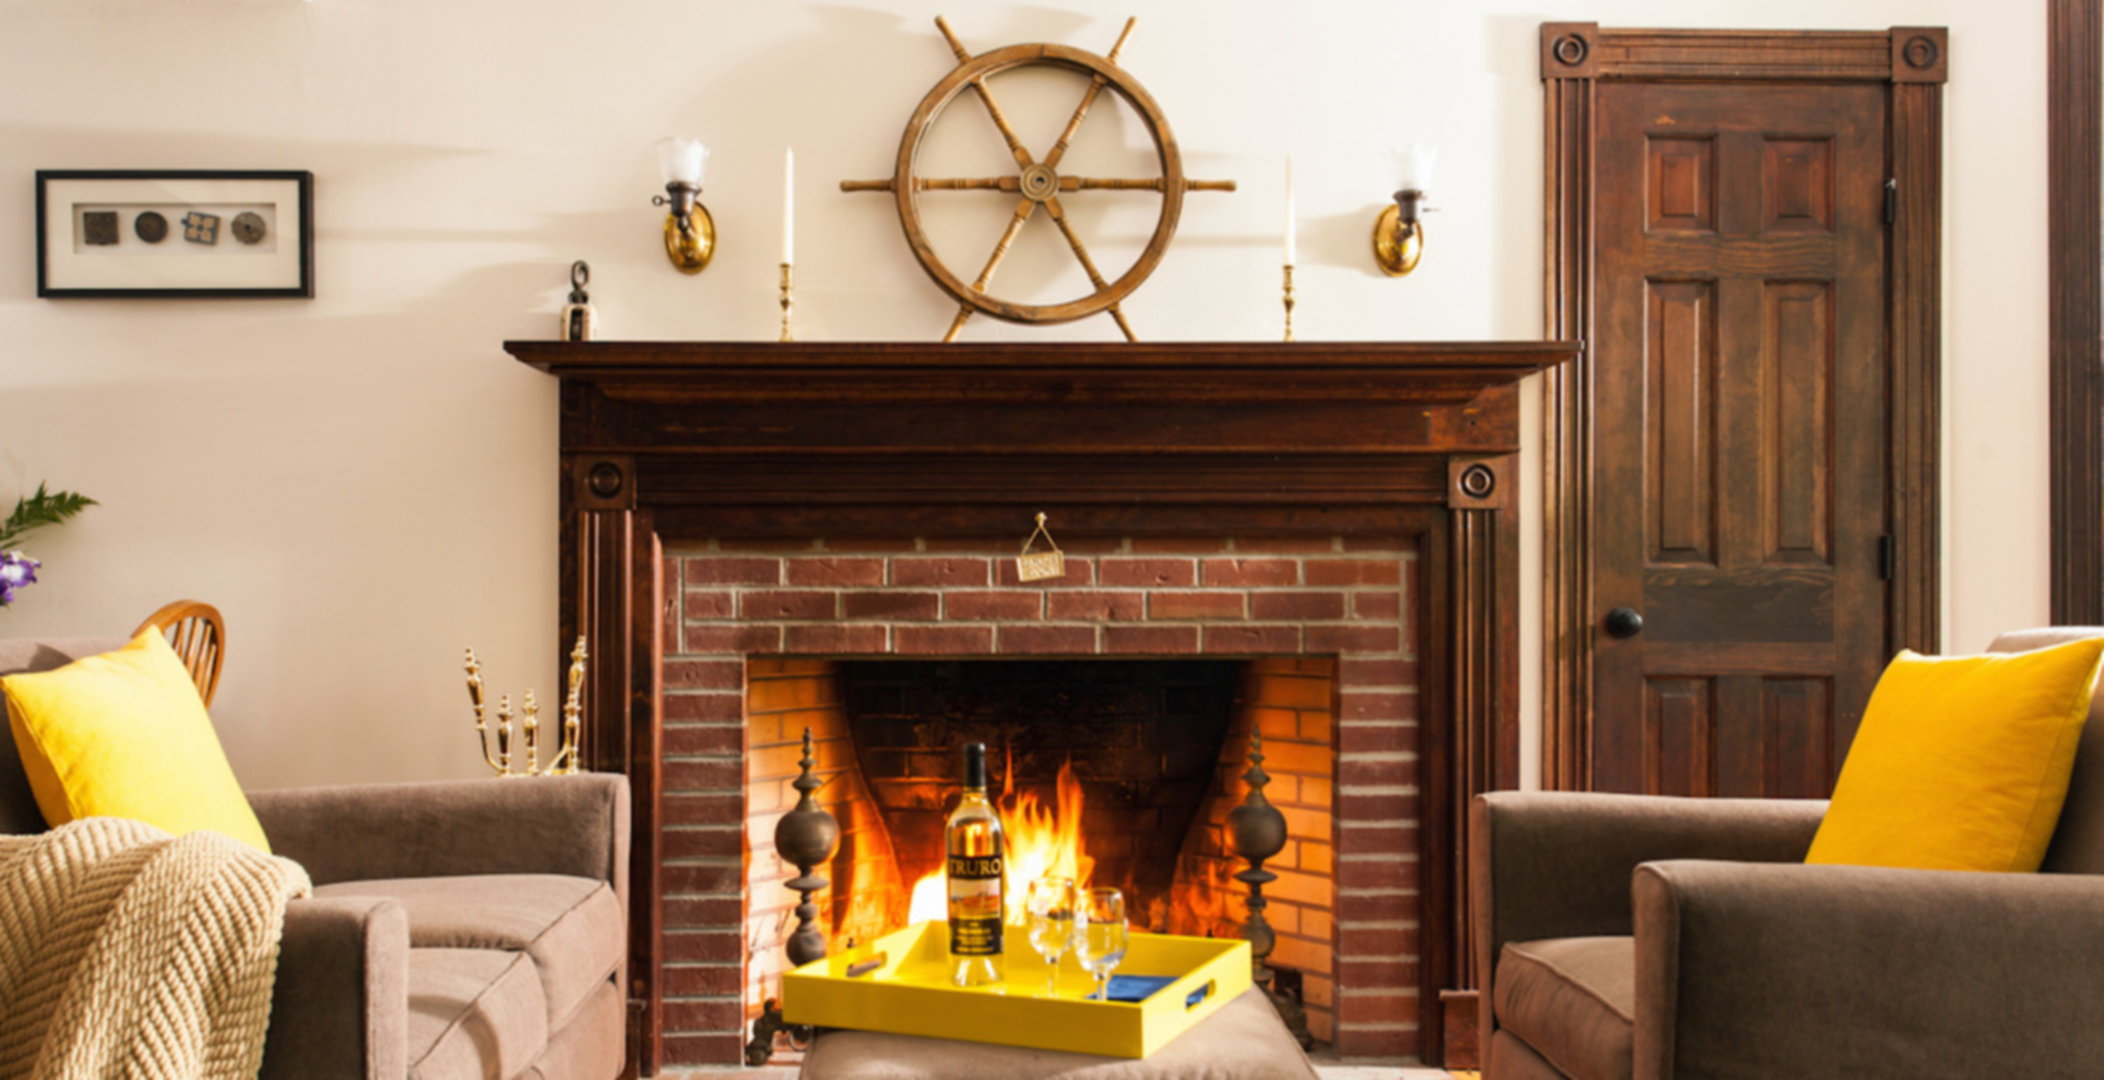 A fireplace in a living room filled with furniture and a fire place at The Inn at the Oaks .